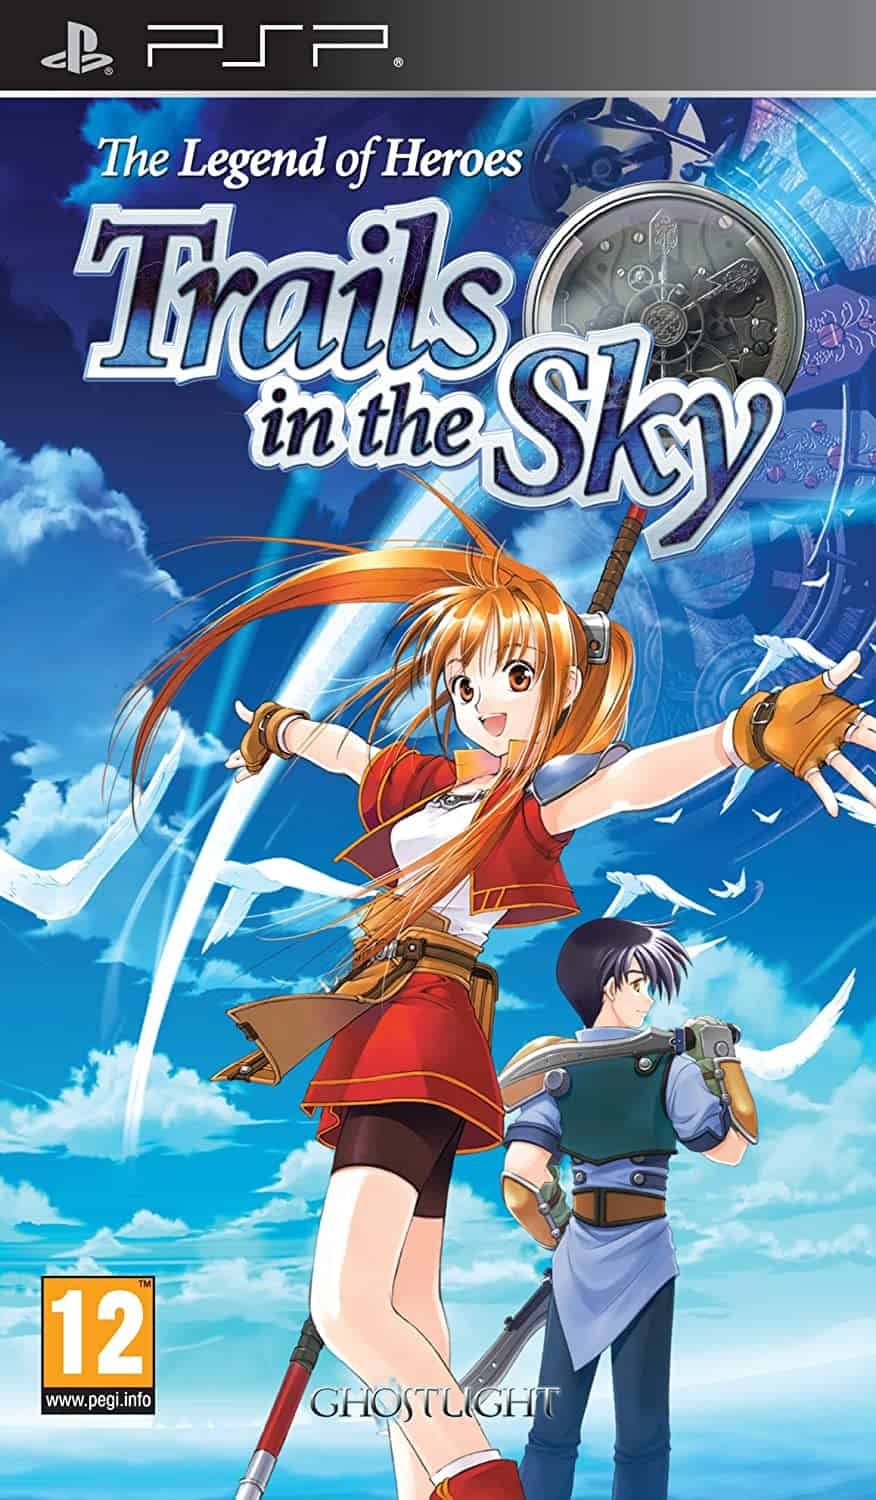 Best PSP RPGs - The Legend of Heroes: Trails in the sky